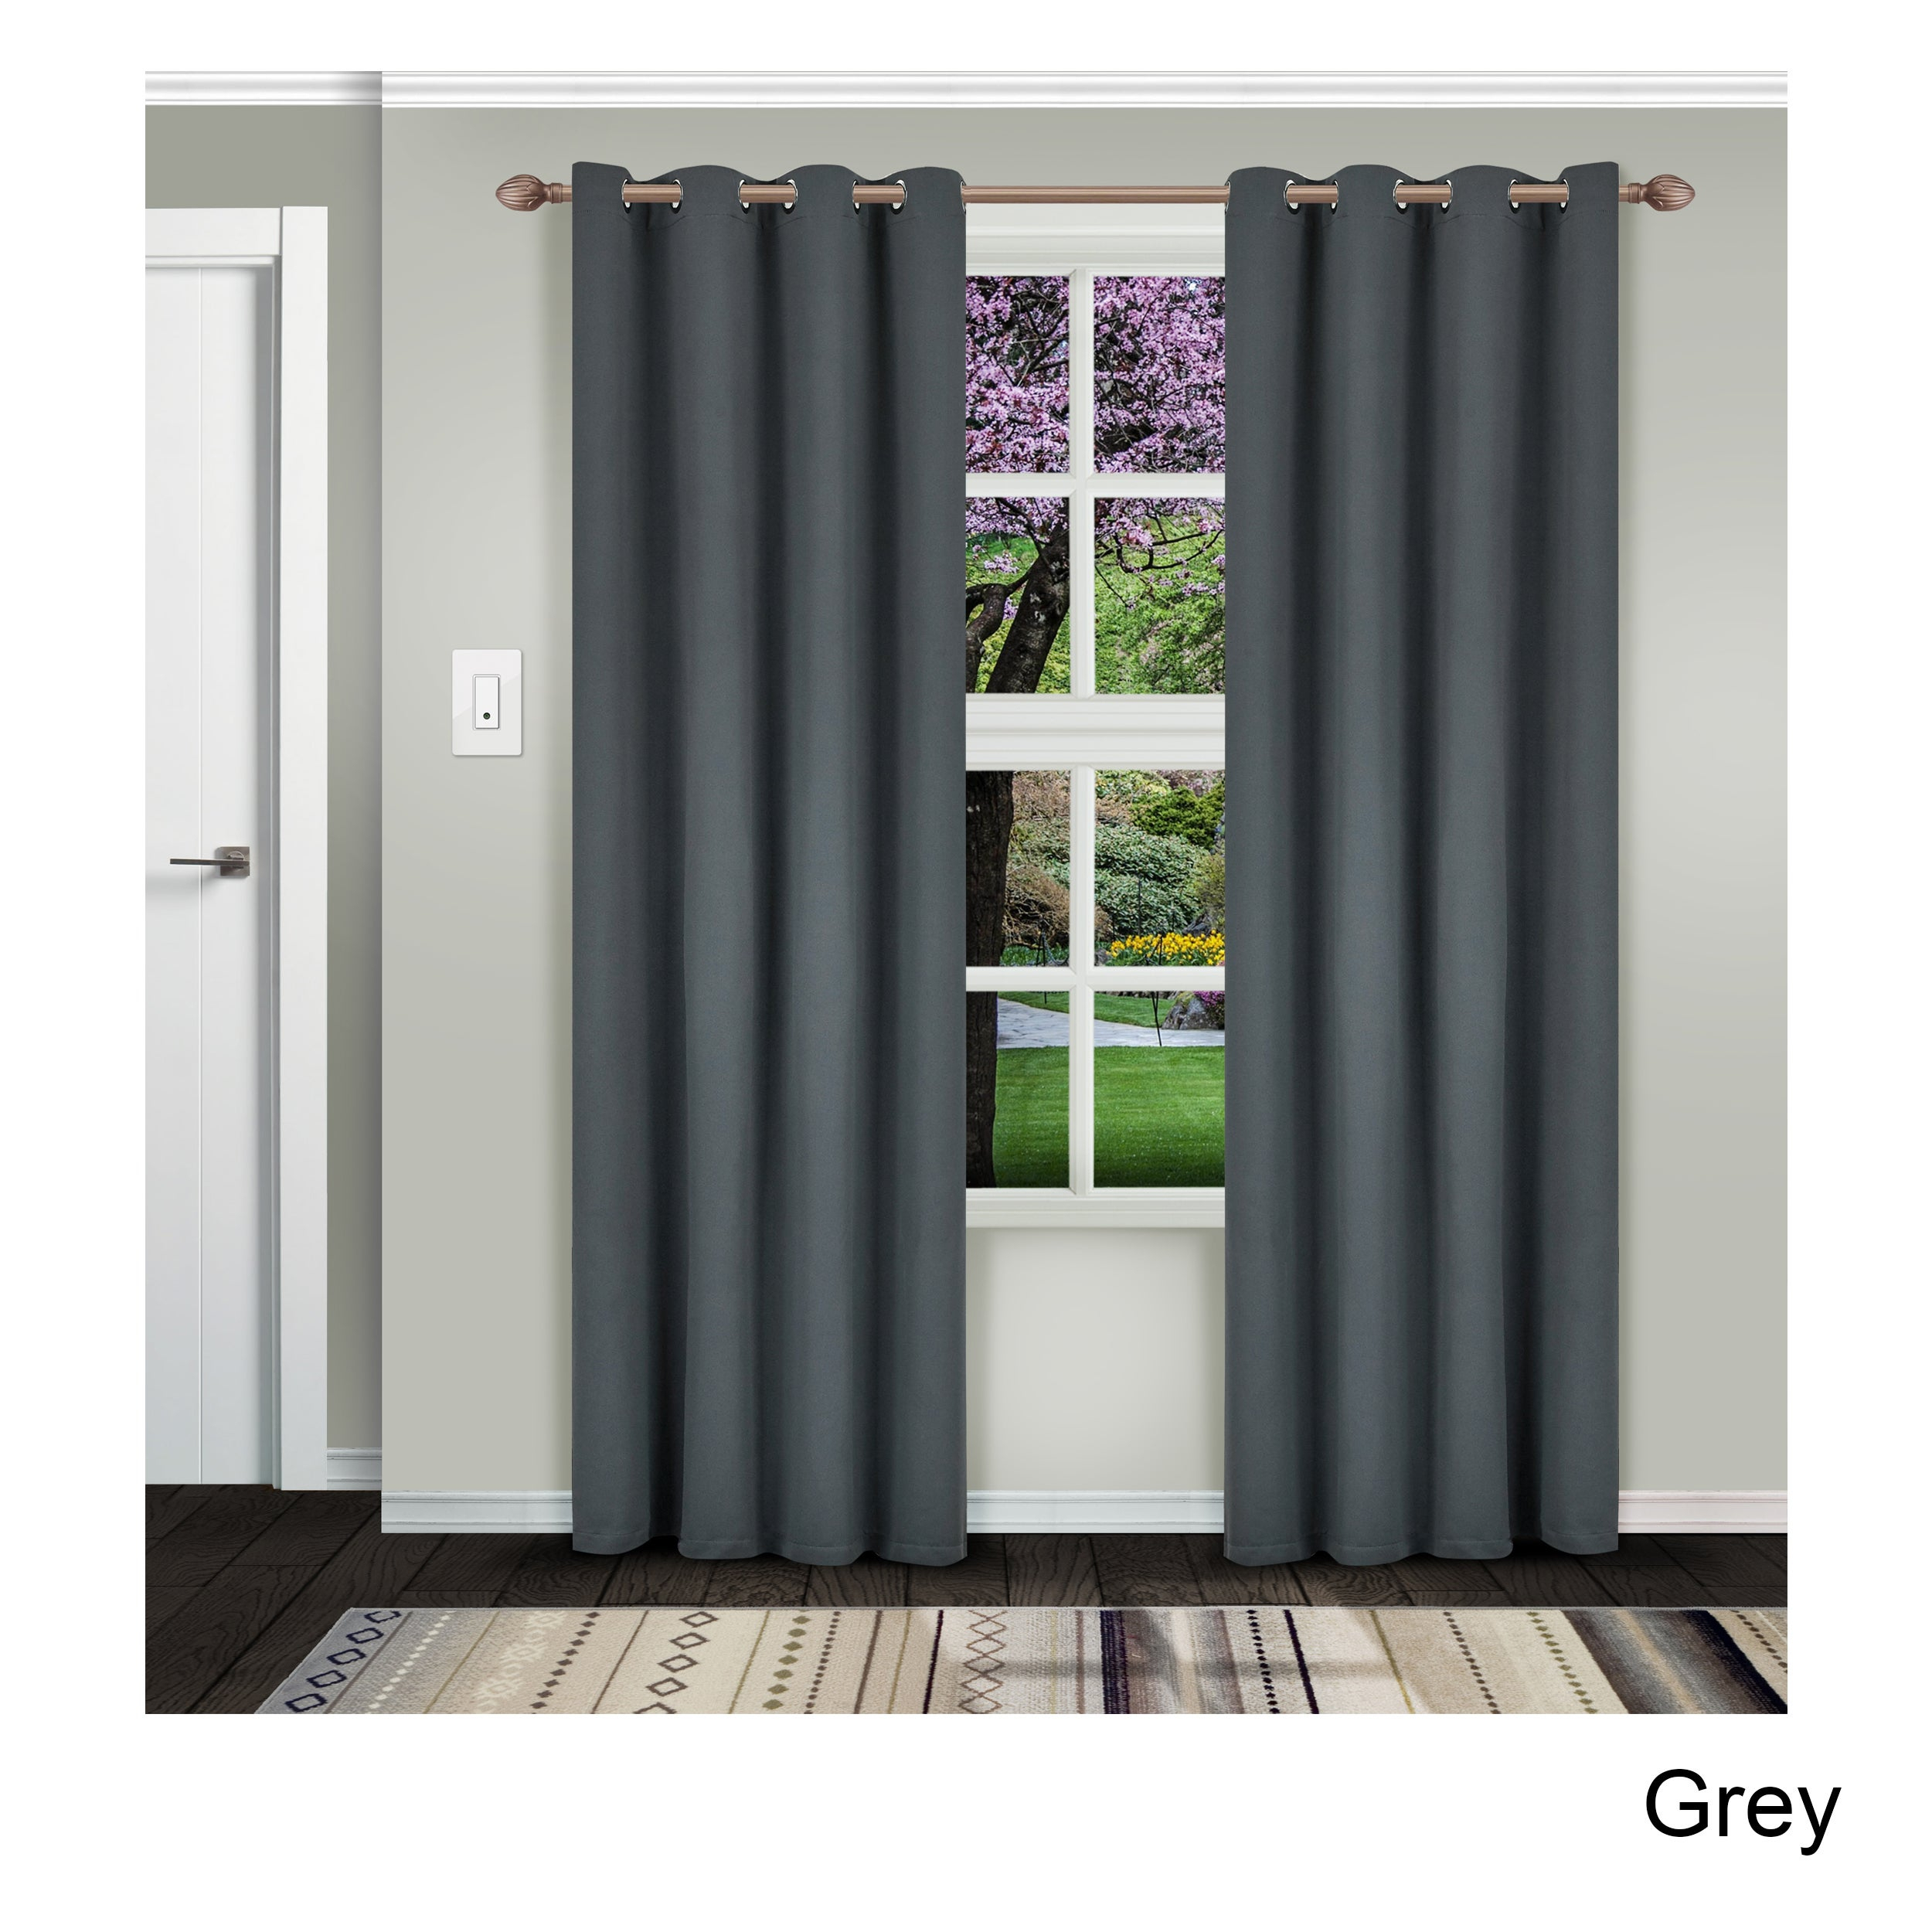 Superior Solid Insulated Thermal Blackout Grommet Curtain Panel Pair Intended For Insulated Thermal Blackout Curtain Panel Pairs (View 18 of 20)